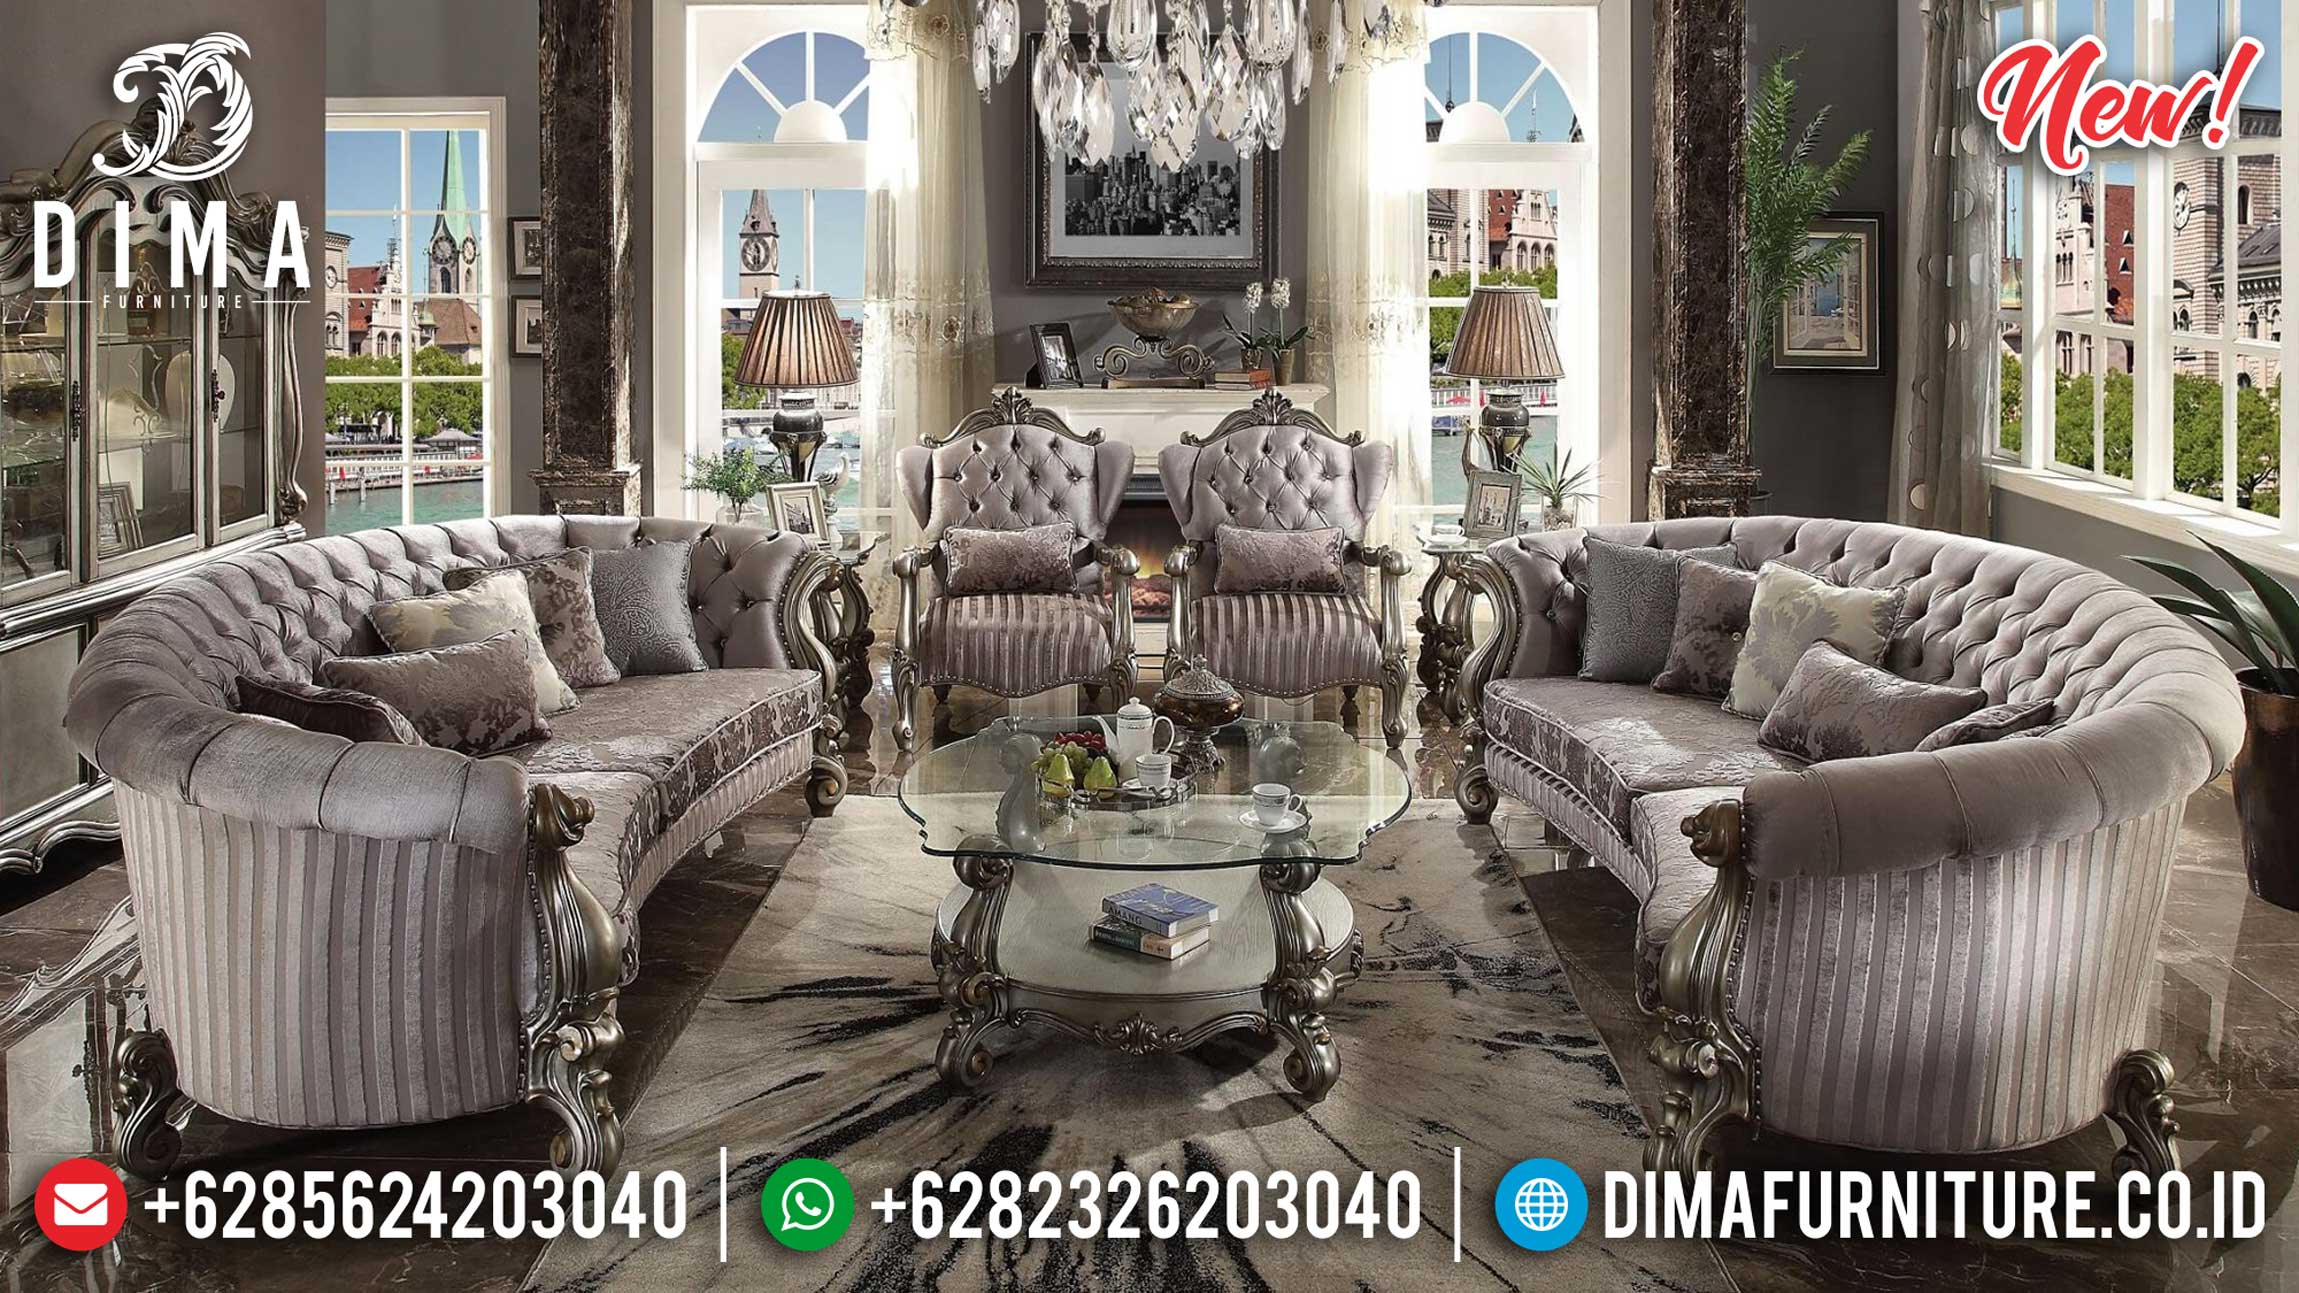 Jual Sofa Tamu Mewah Luxury Carving Silver Champagne New Color Style ST-1009